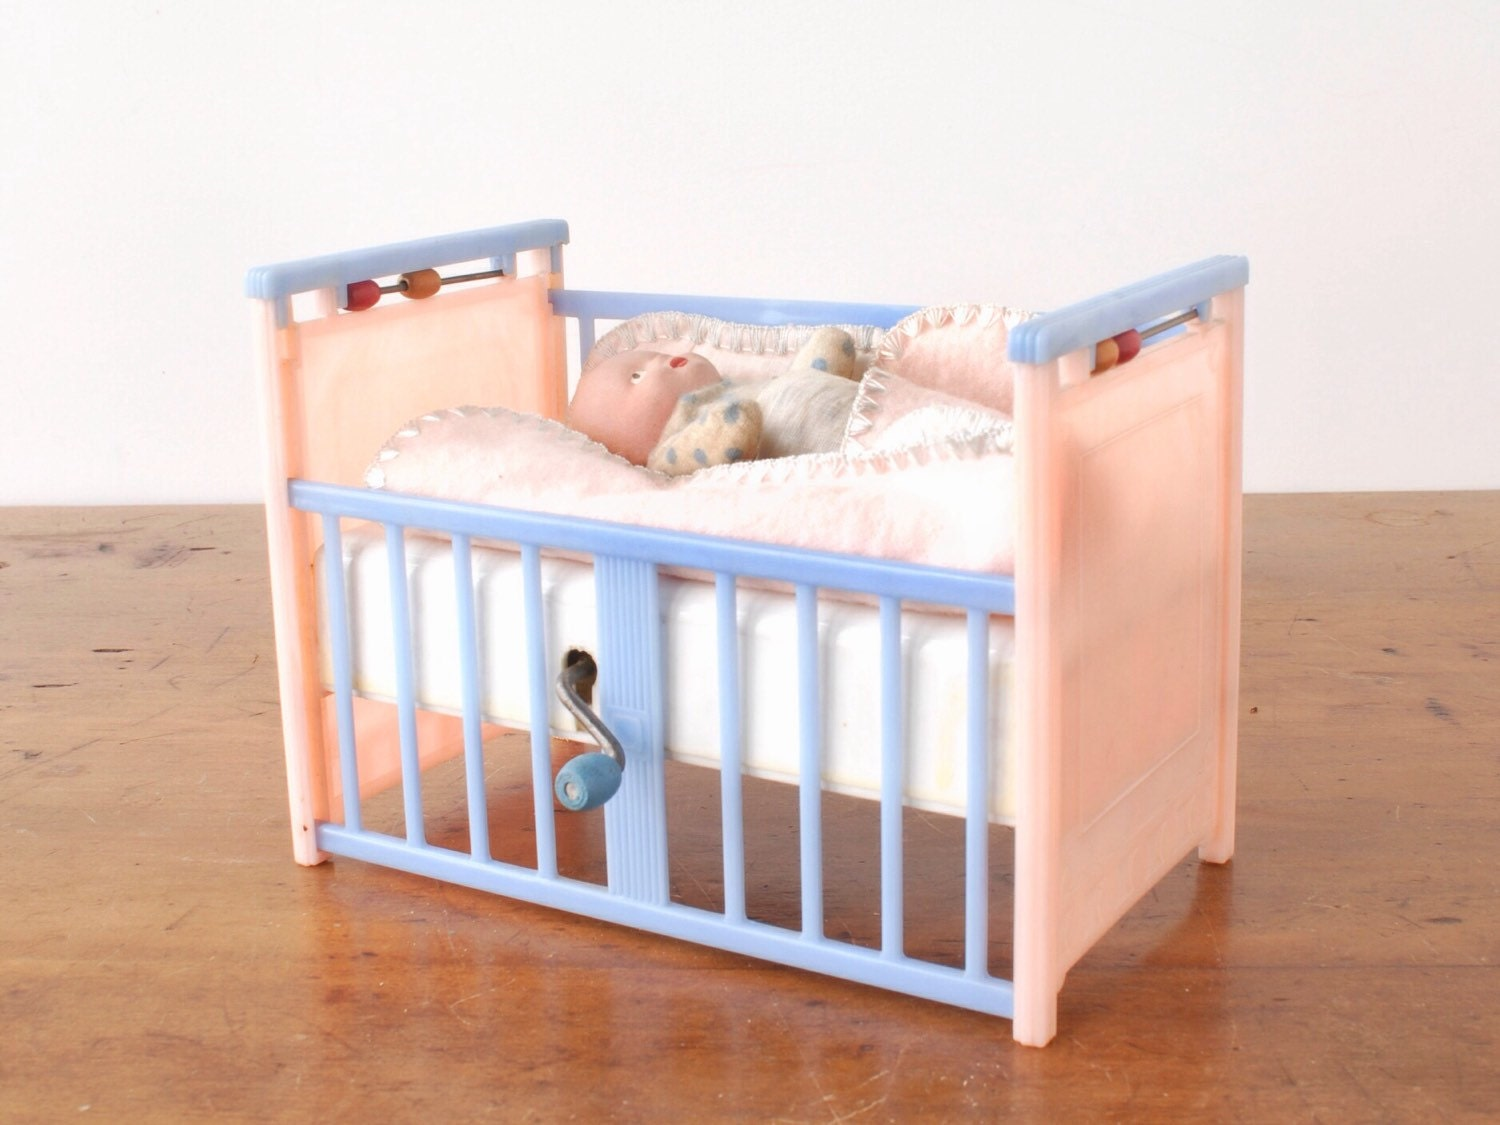 Vintage Mattel Creations Lullaby Doll Crib with original baby